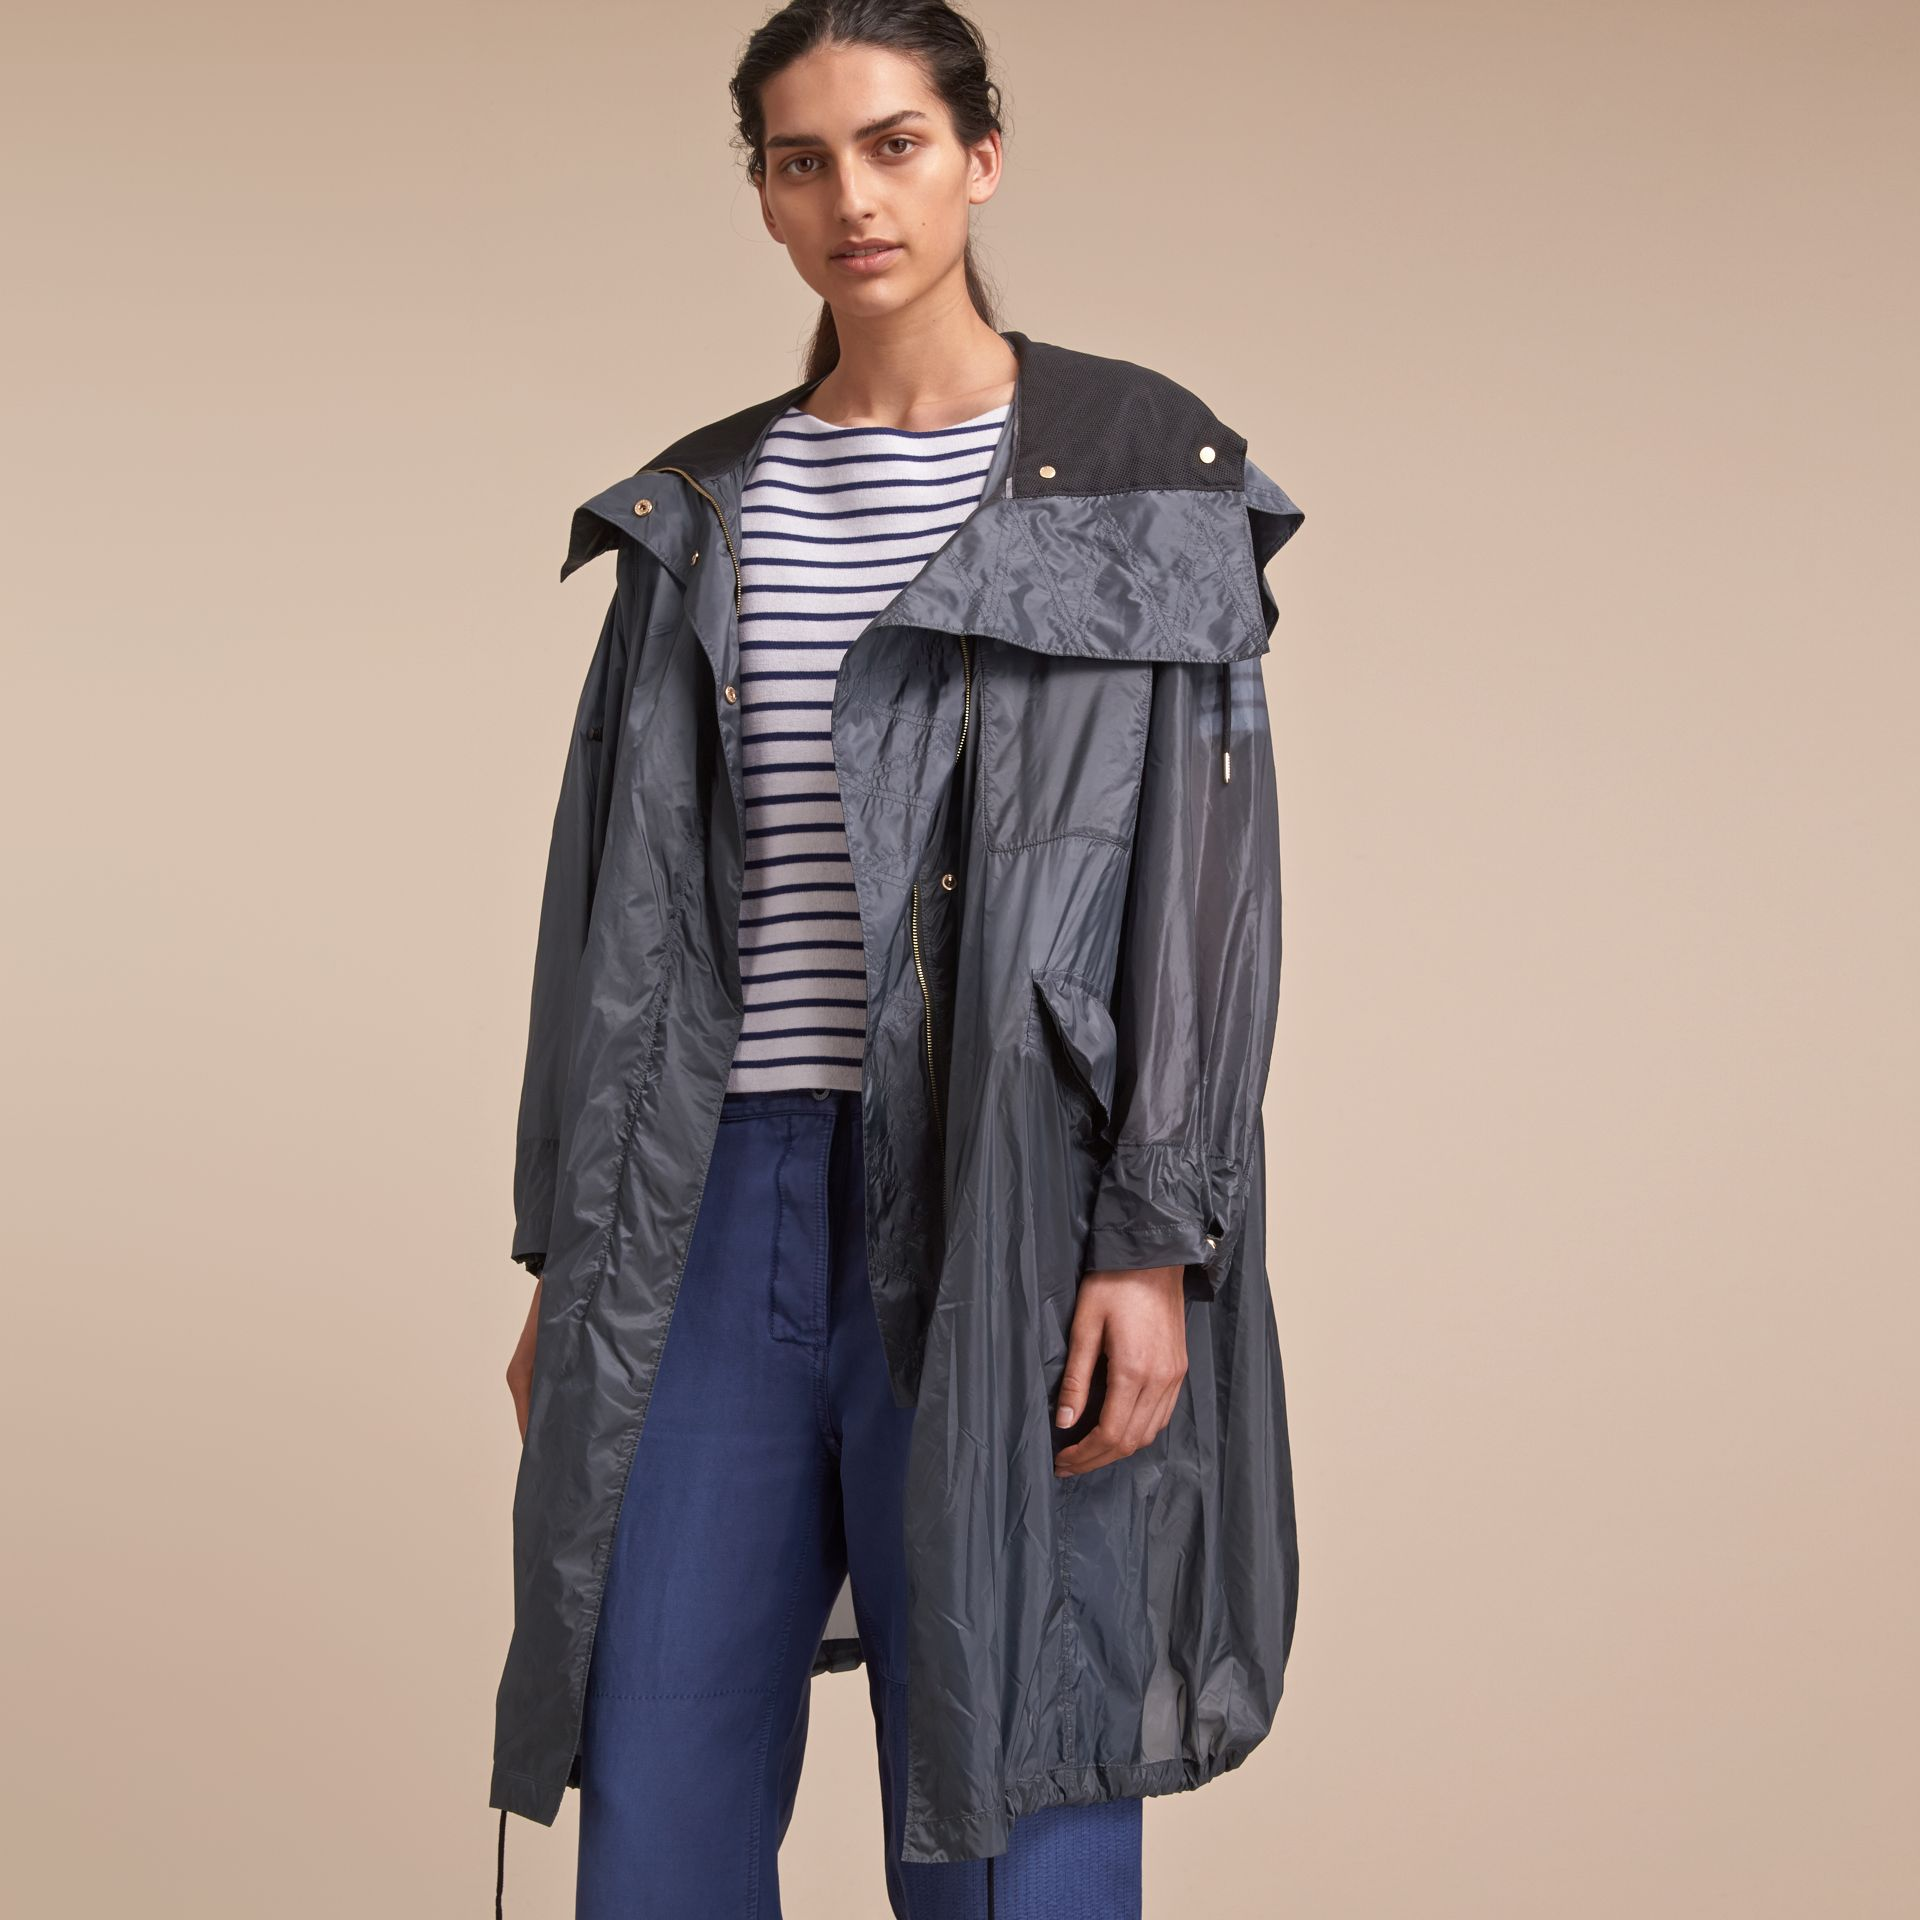 Hooded Lightweight Oversize Parka in Airforce Blue - Women | Burberry - gallery image 6